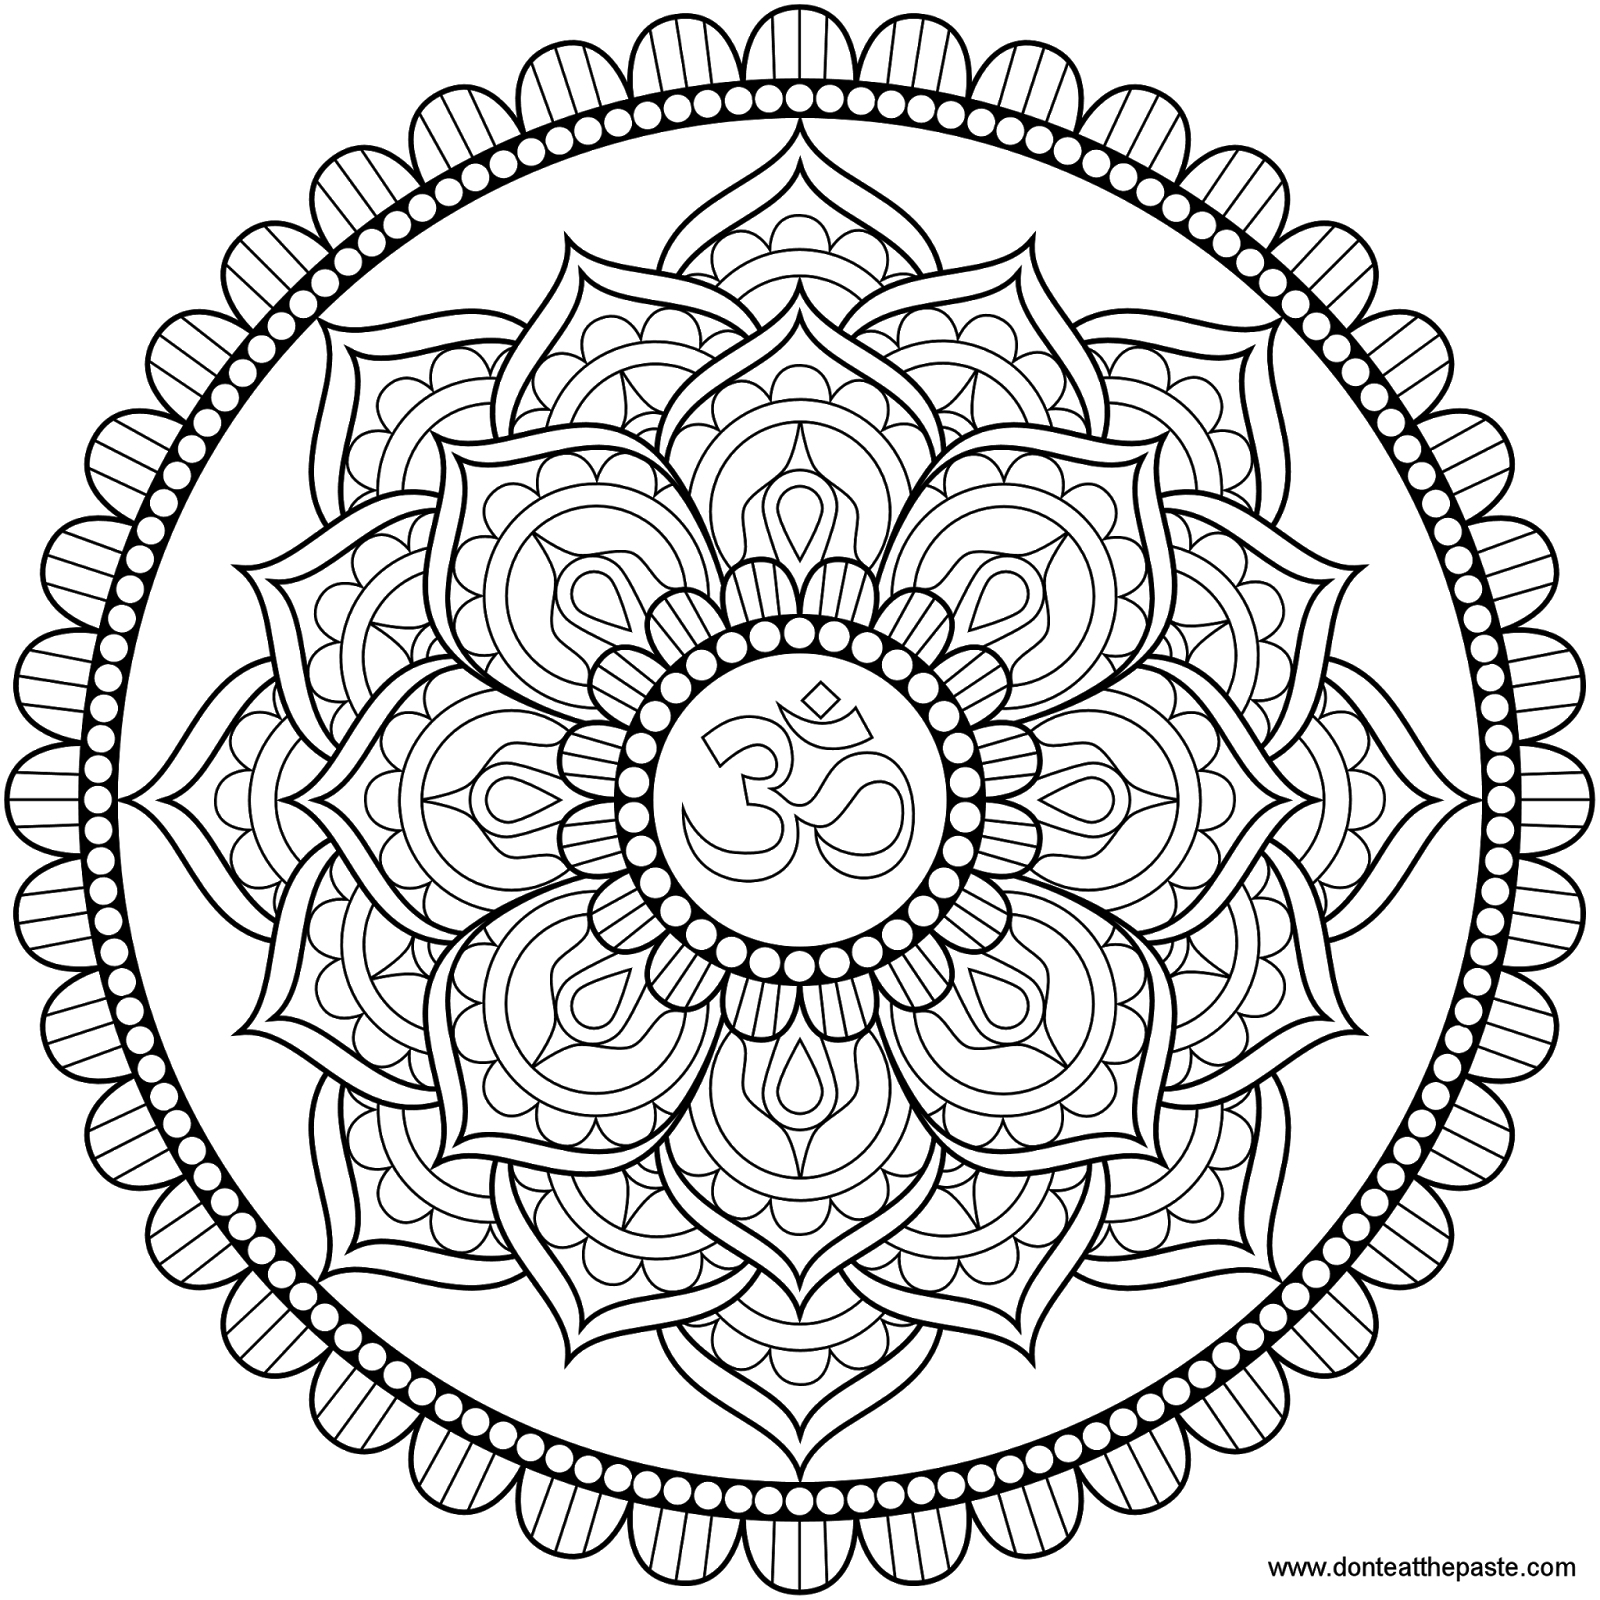 buddhist coloring pages buddhism coloring page free religions coloring pages buddhist coloring pages